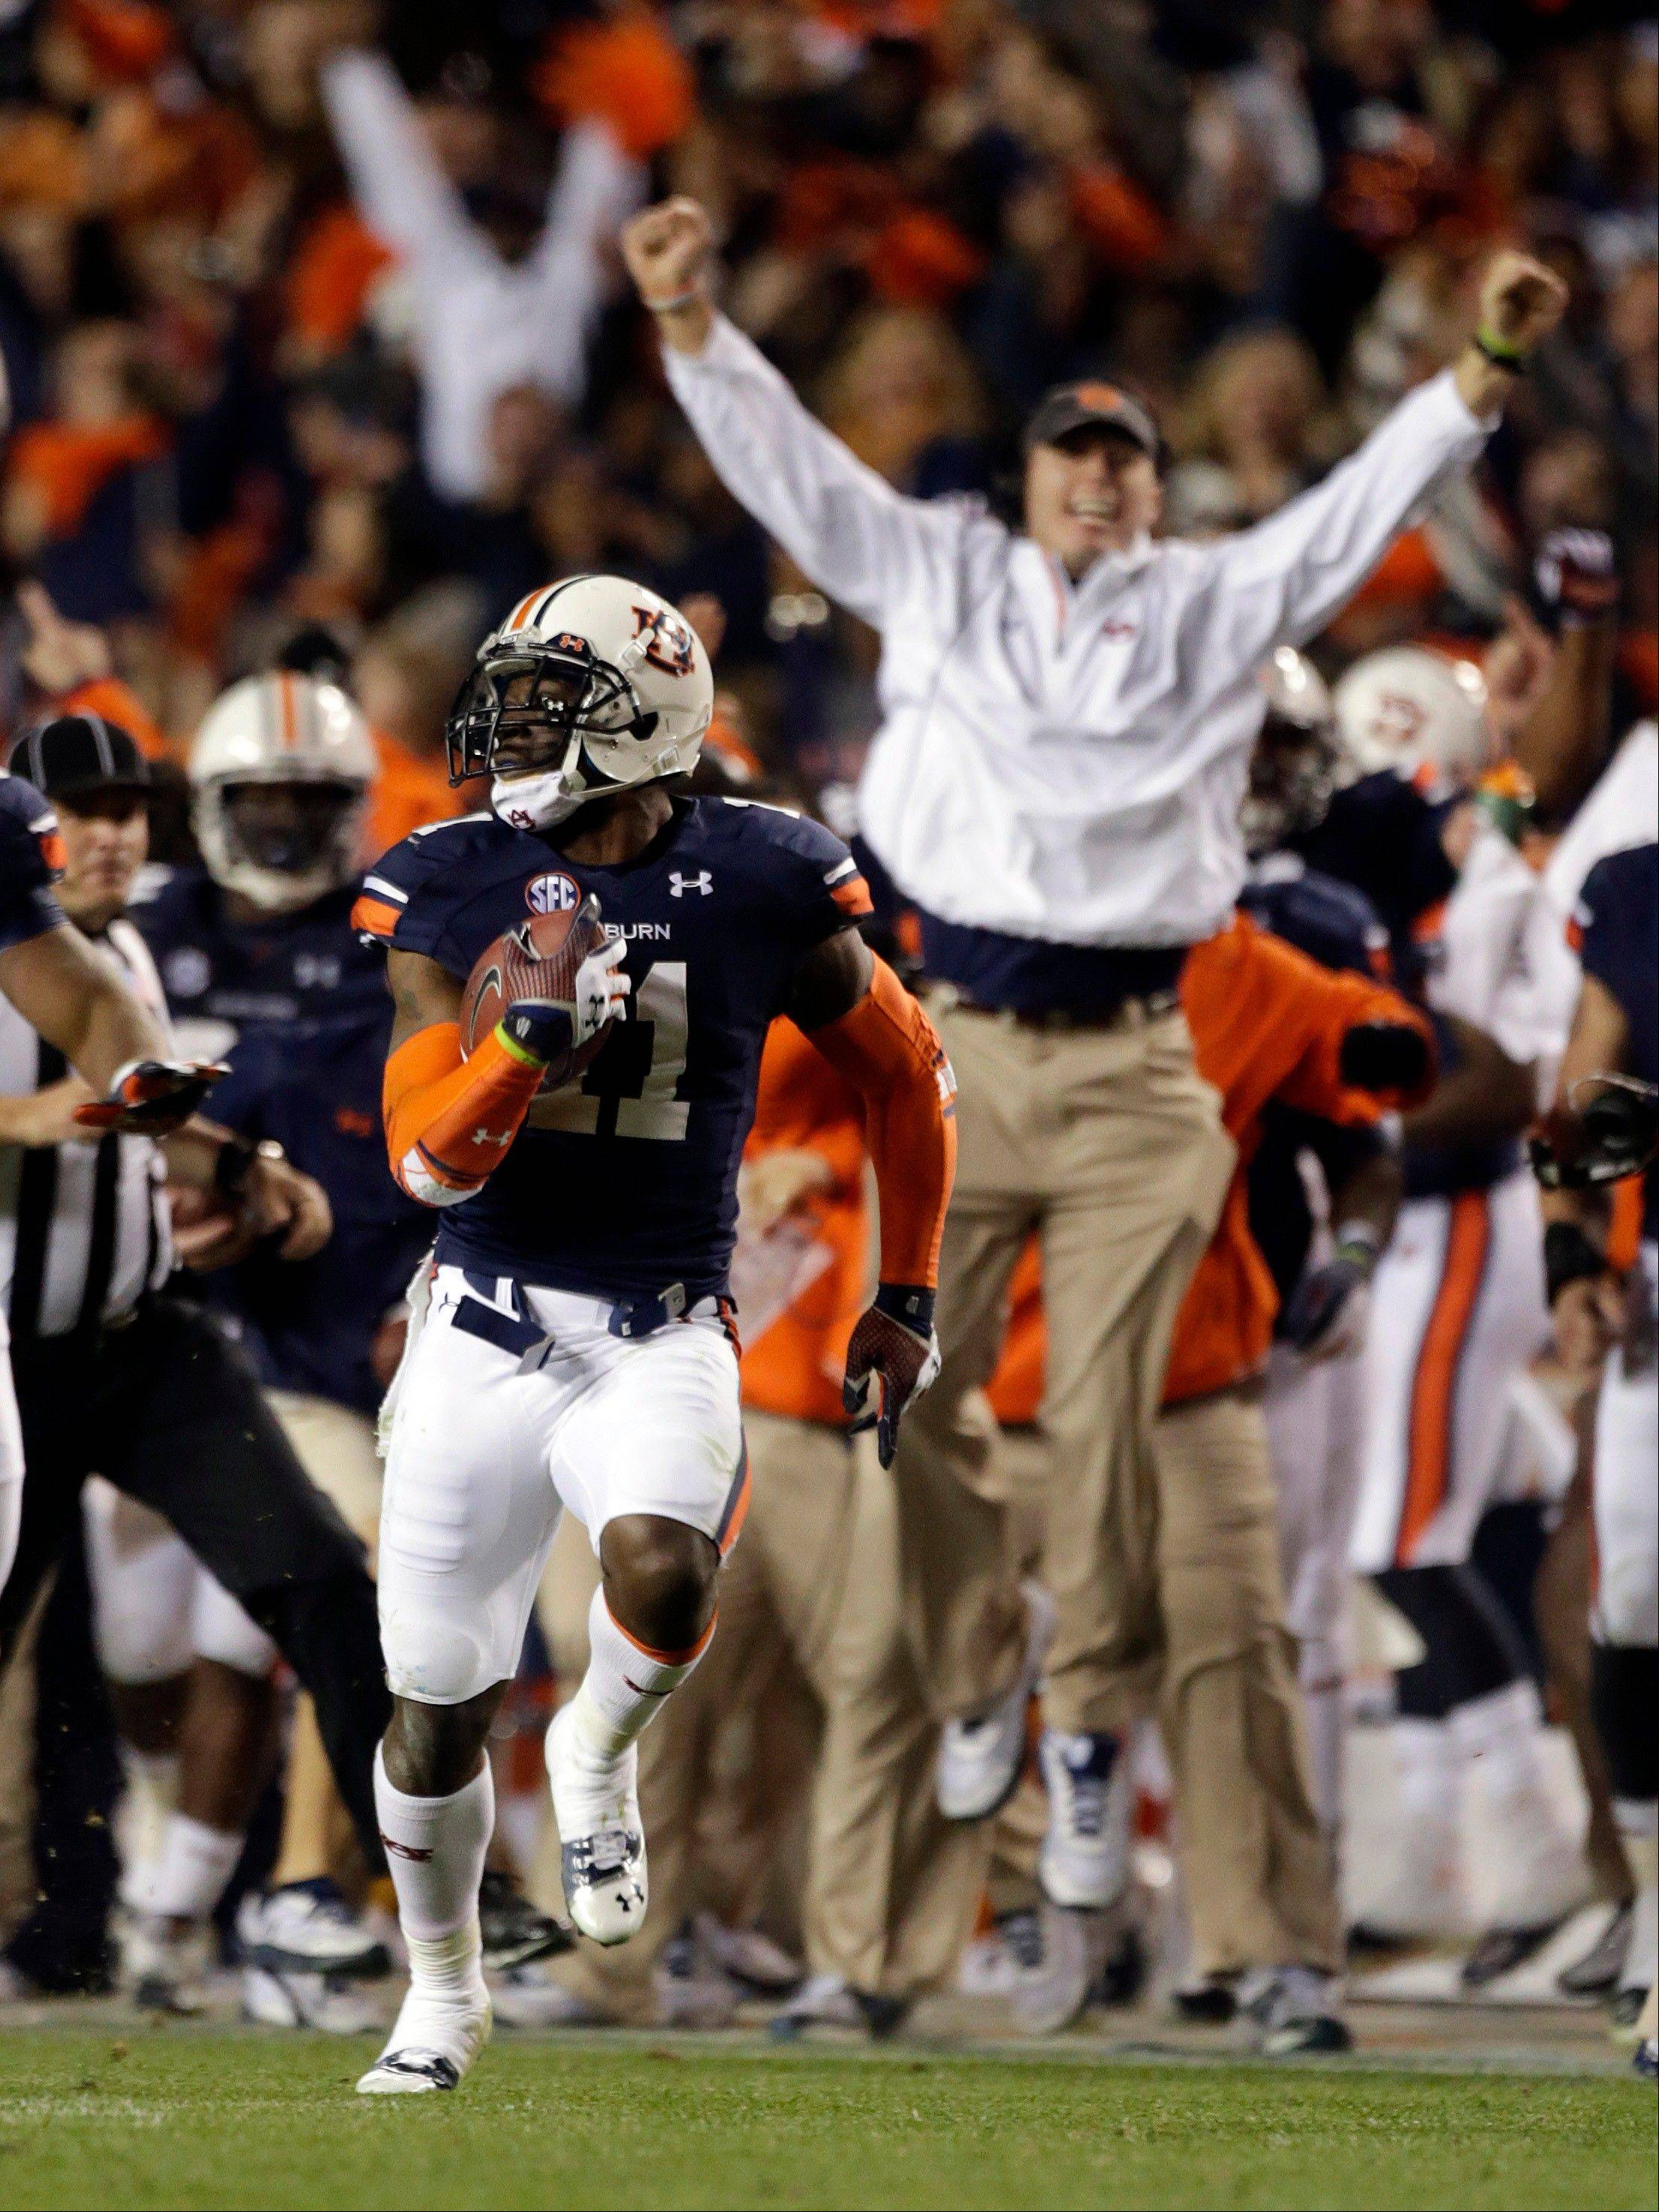 Auburn cornerback Chris Davis (11) returns a missed field goal attempt 100-plus yards to score the game-winning touchdown as time expired in the fourth quarter of an NCAA college football game against No. 1 Alabama in Auburn, Ala., Saturday, Nov. 30, 2013. Auburn won 34-28.